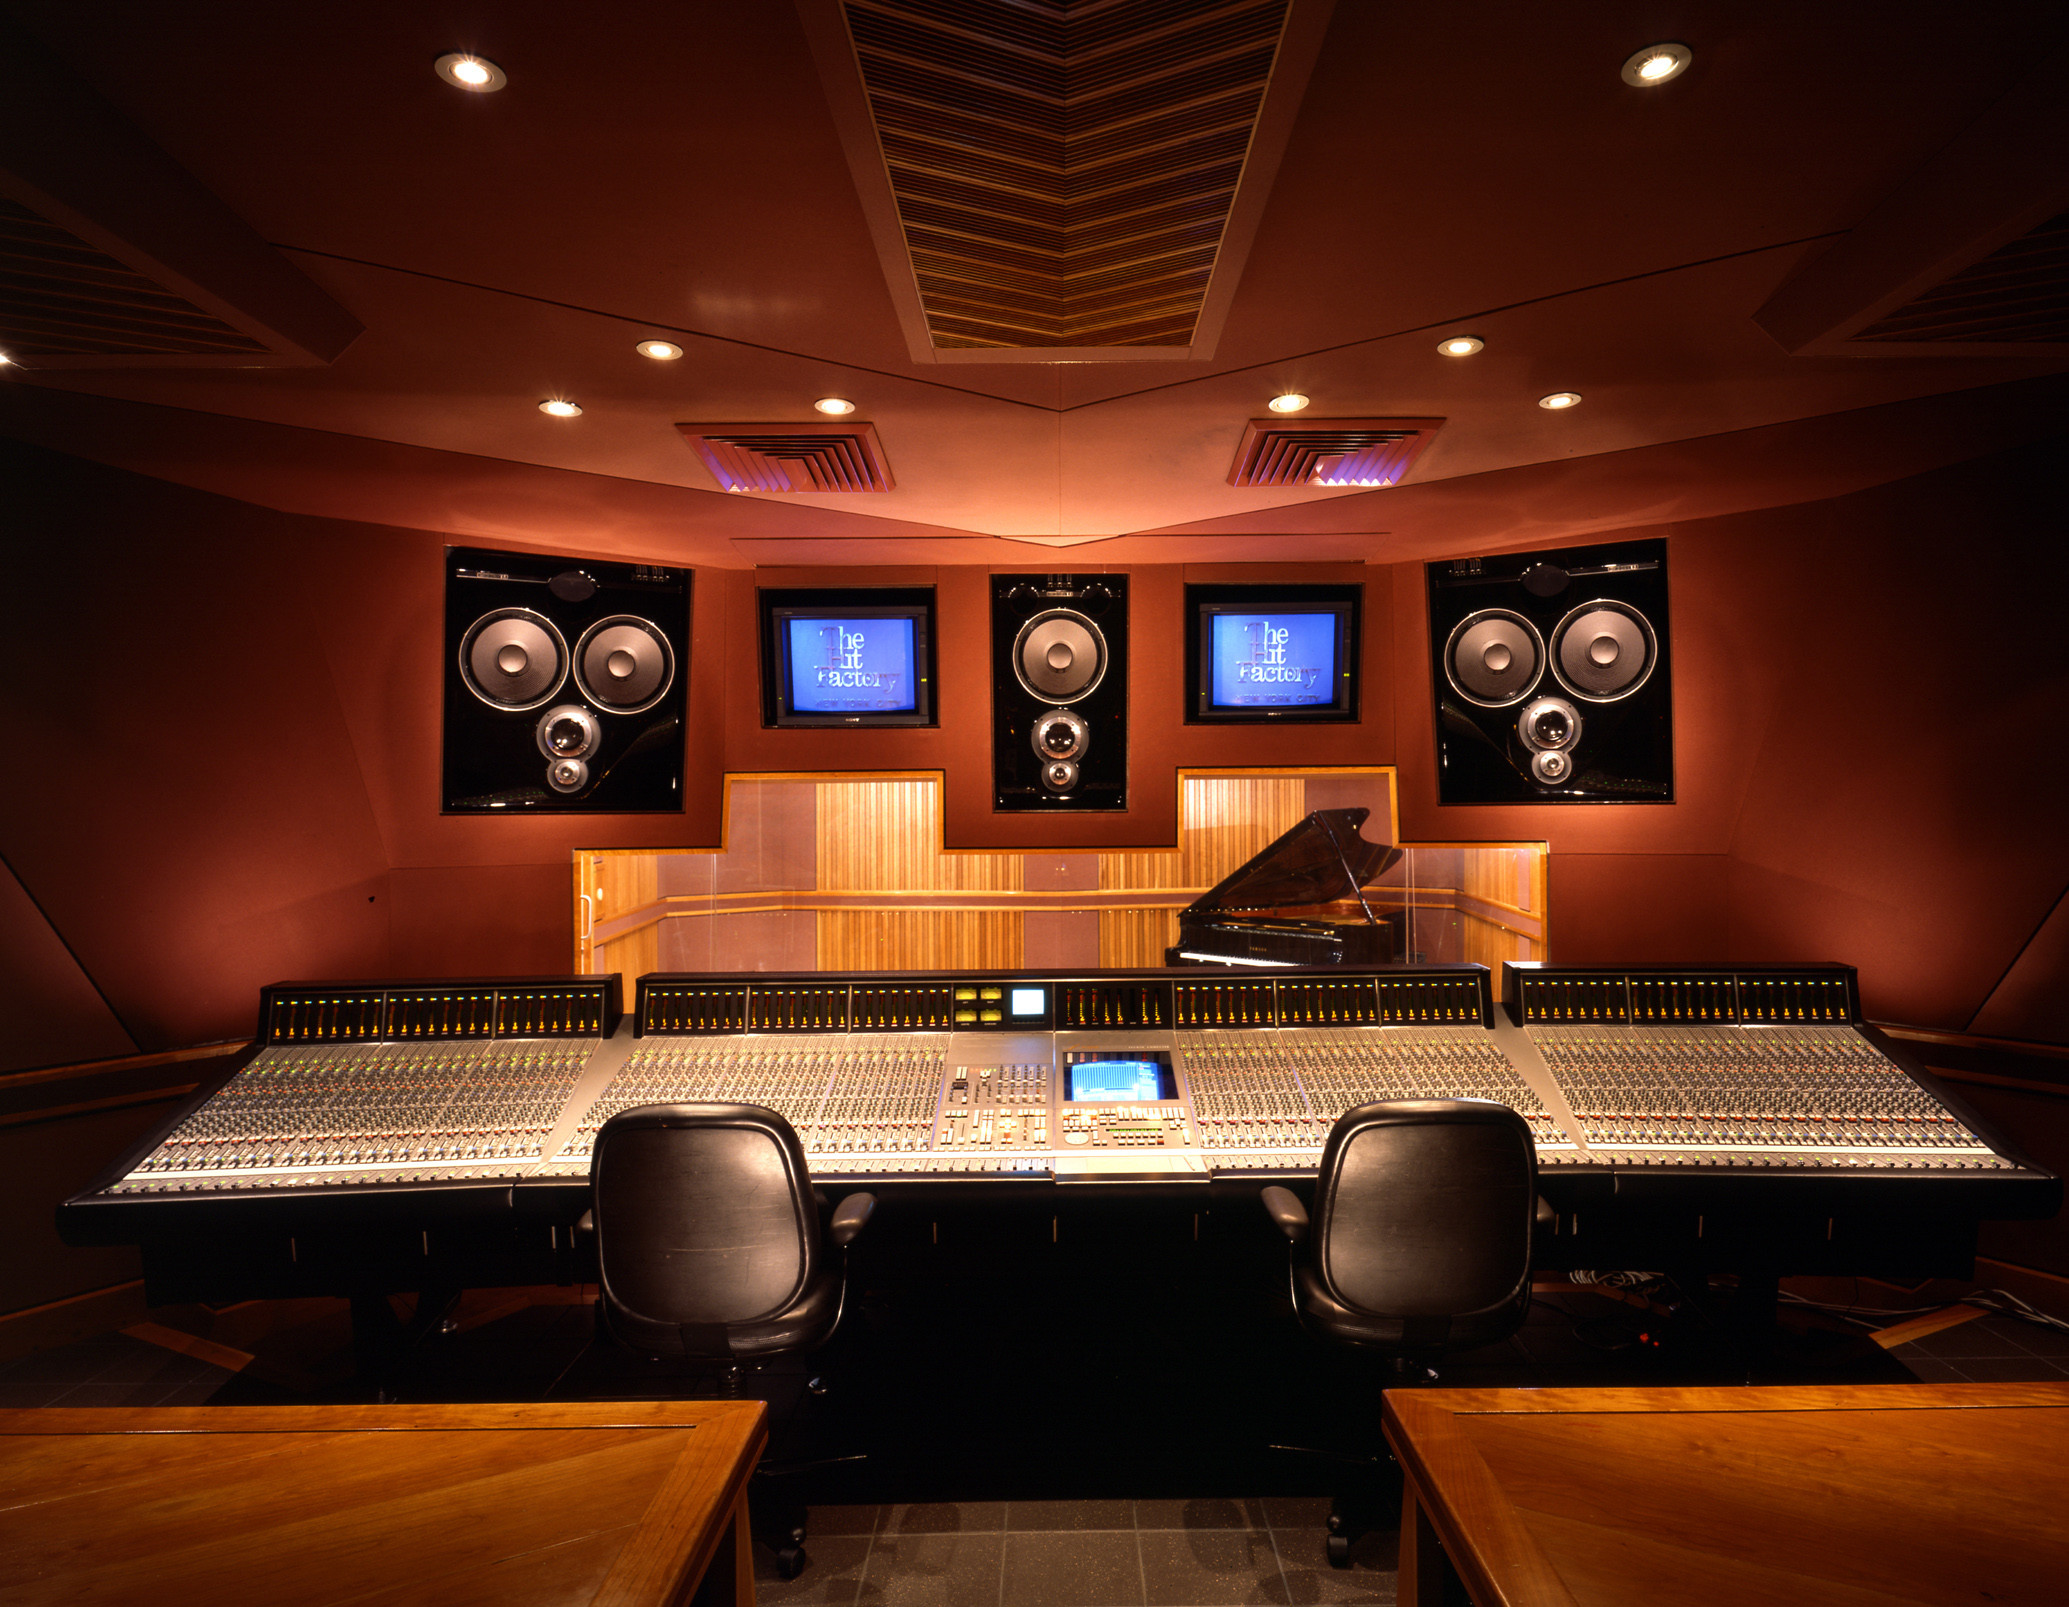 2069x1607 The Hit Factory Recording Studio, New York, NY. The Hit Factory closed its  doors in 2005 due to the rise of digital home recording becoming much more  ...